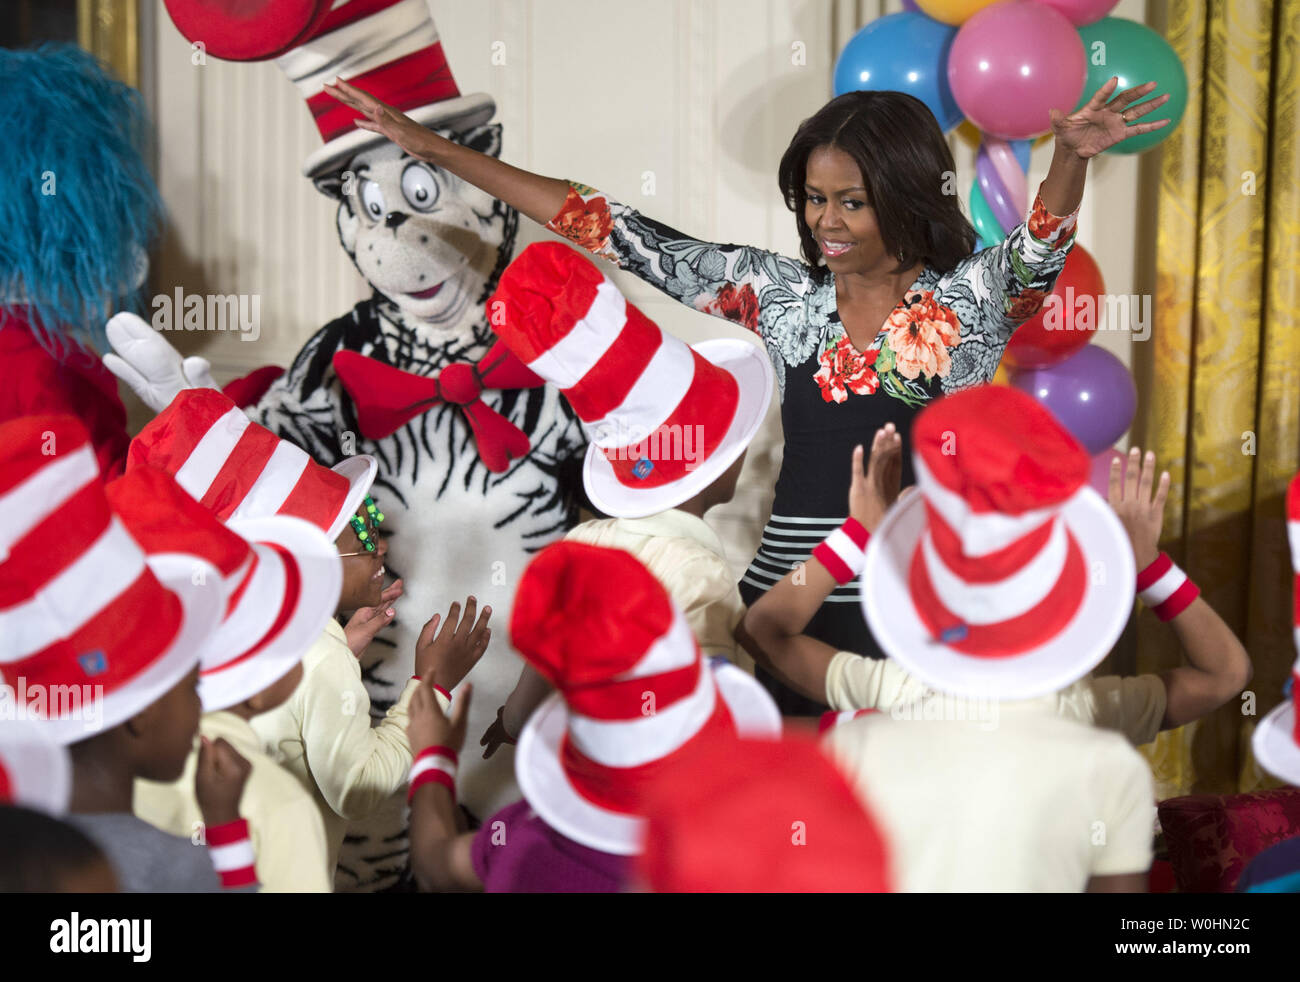 First Lady Michelle Obama dances with school children after reading Dr. Seuss's book, 'Oh, The Things You Can Do That Are Good for You: All About Staying Healthy,'  in the East Room at the White House in Washington, D.C. on January 21, 2015. The event was part of the First Lady's Let's Move! initiative to inform children about making health life decisions and staying active. Photo by Kevin Dietsch/UPI - Stock Image